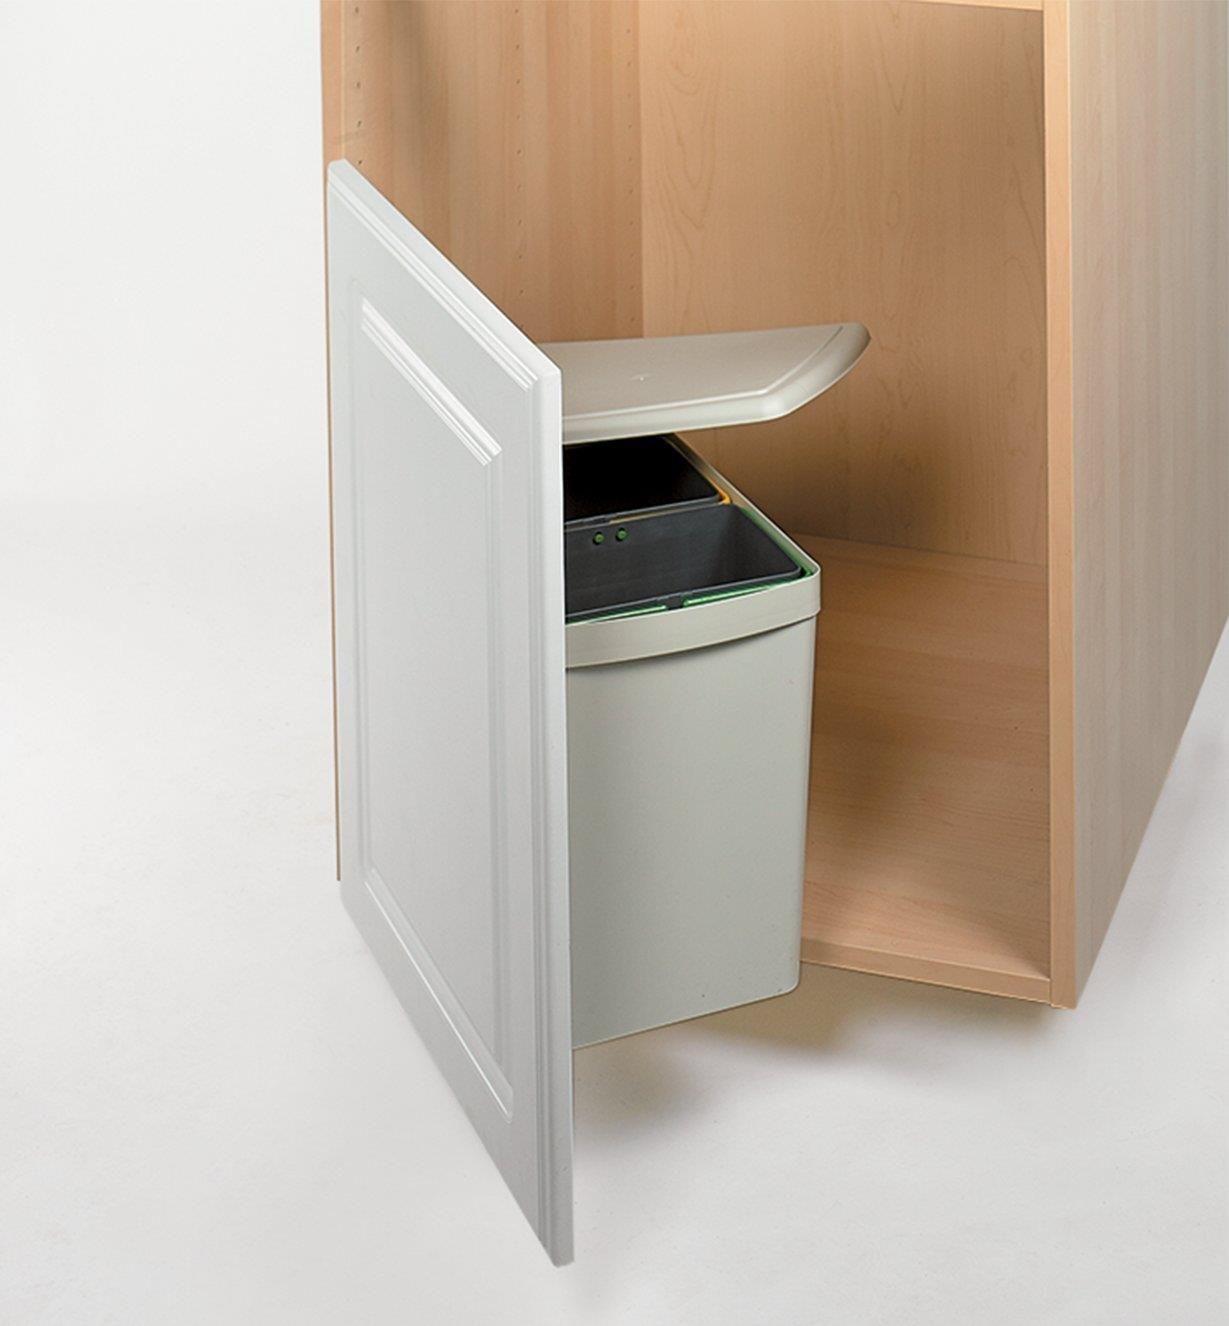 Cover of the waste container lifting as the cupboard door is opened